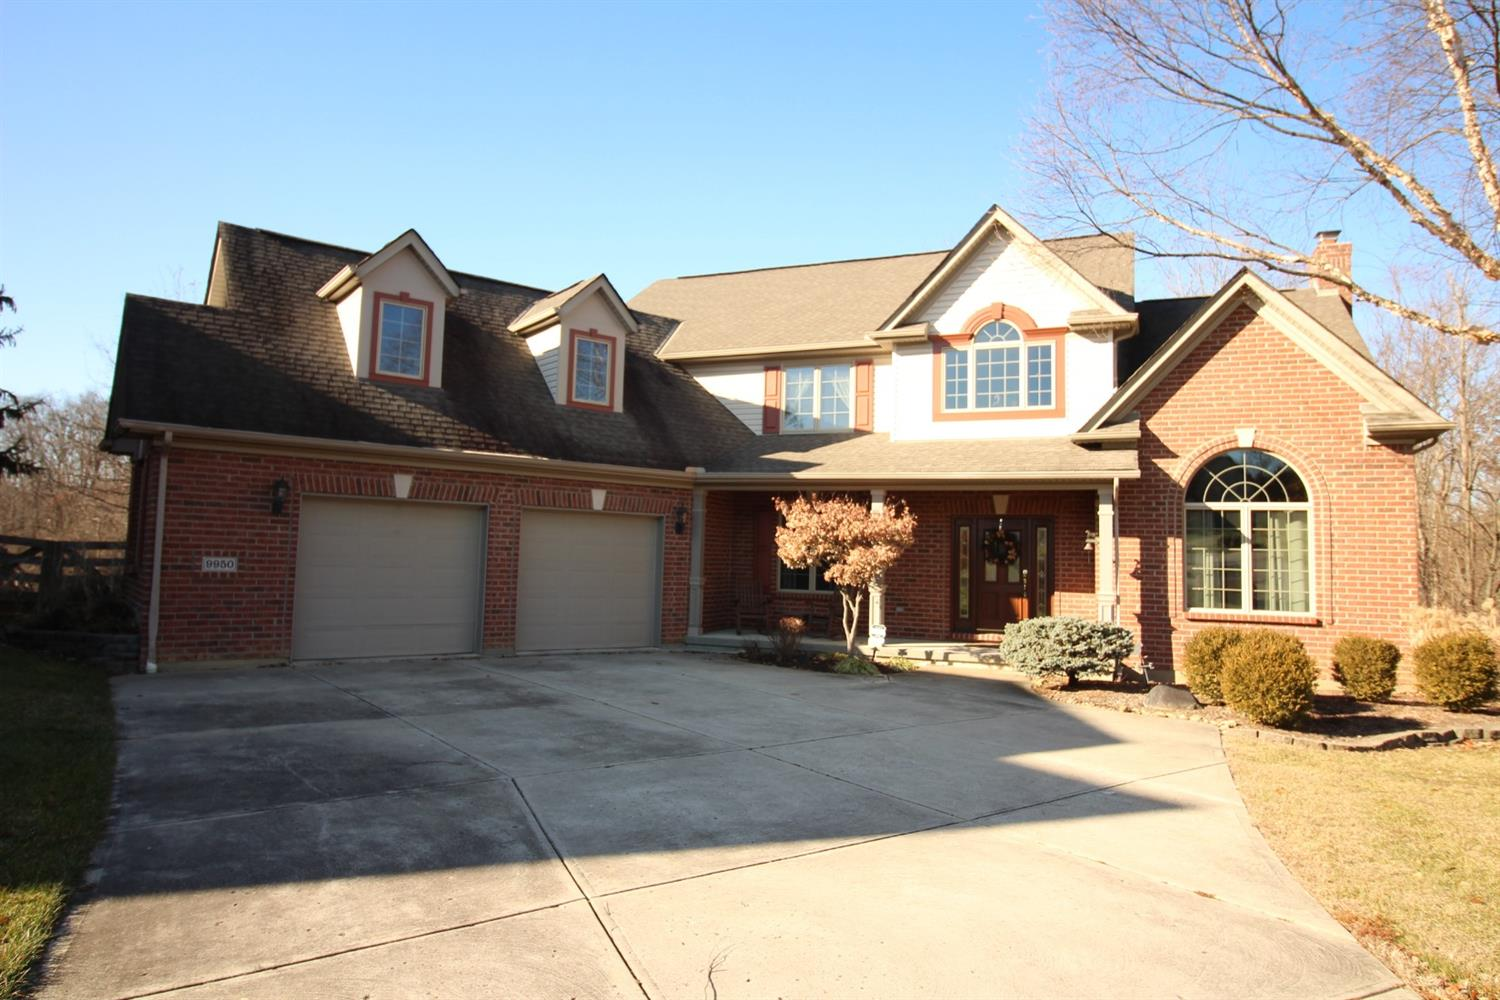 9950 Thorougbred Ln Springfield Twp., OH